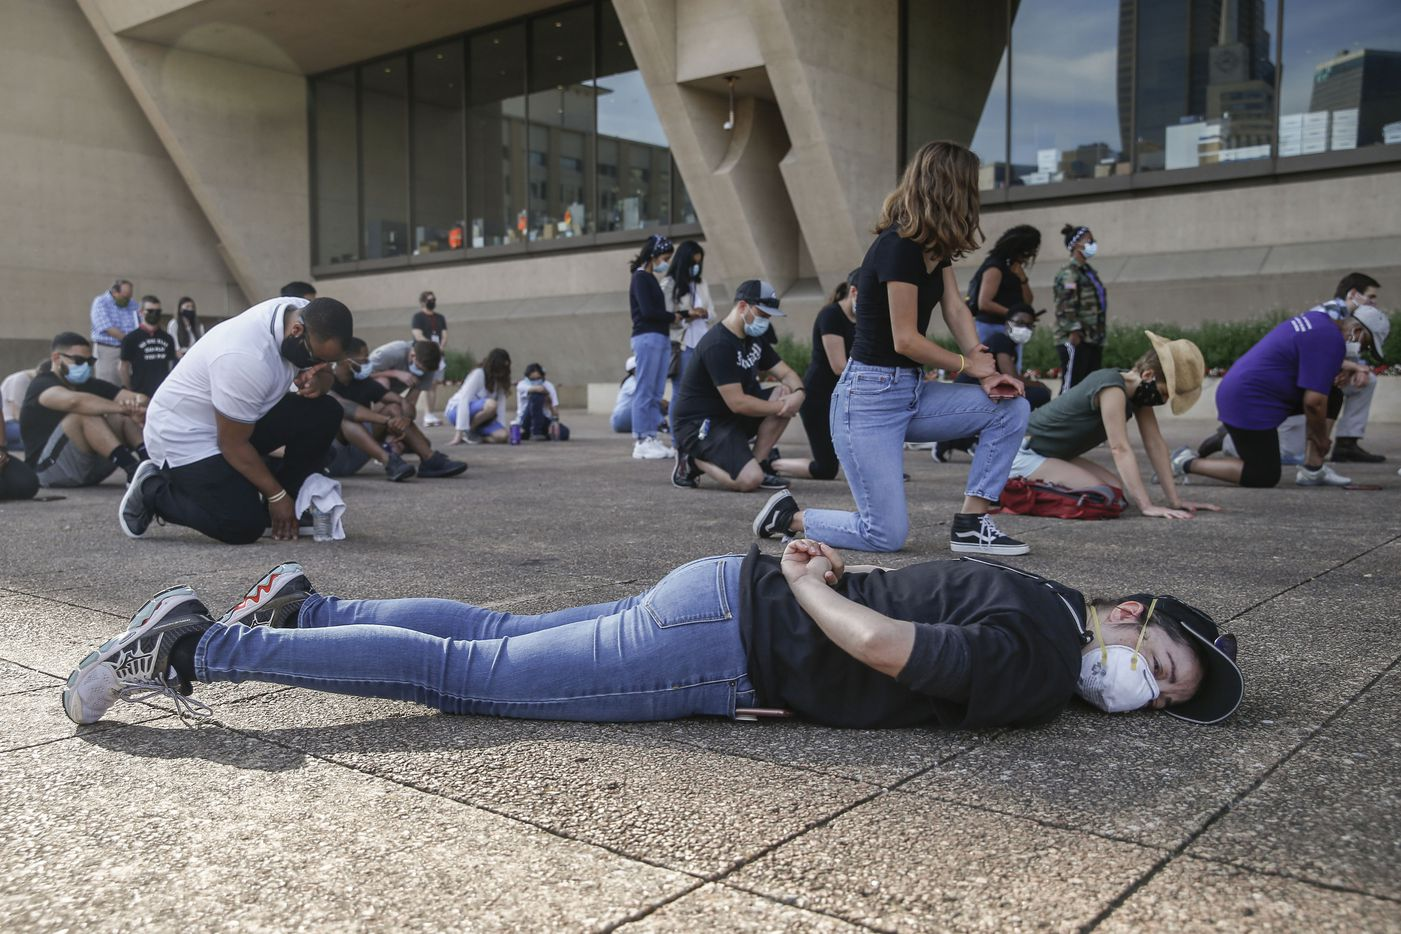 Community members kneel and lay on the ground for an 8 minute and 46 second a moment of silence during a memorial service for George Floyd on Friday, June 5, 2020 at City Hall in Dallas.